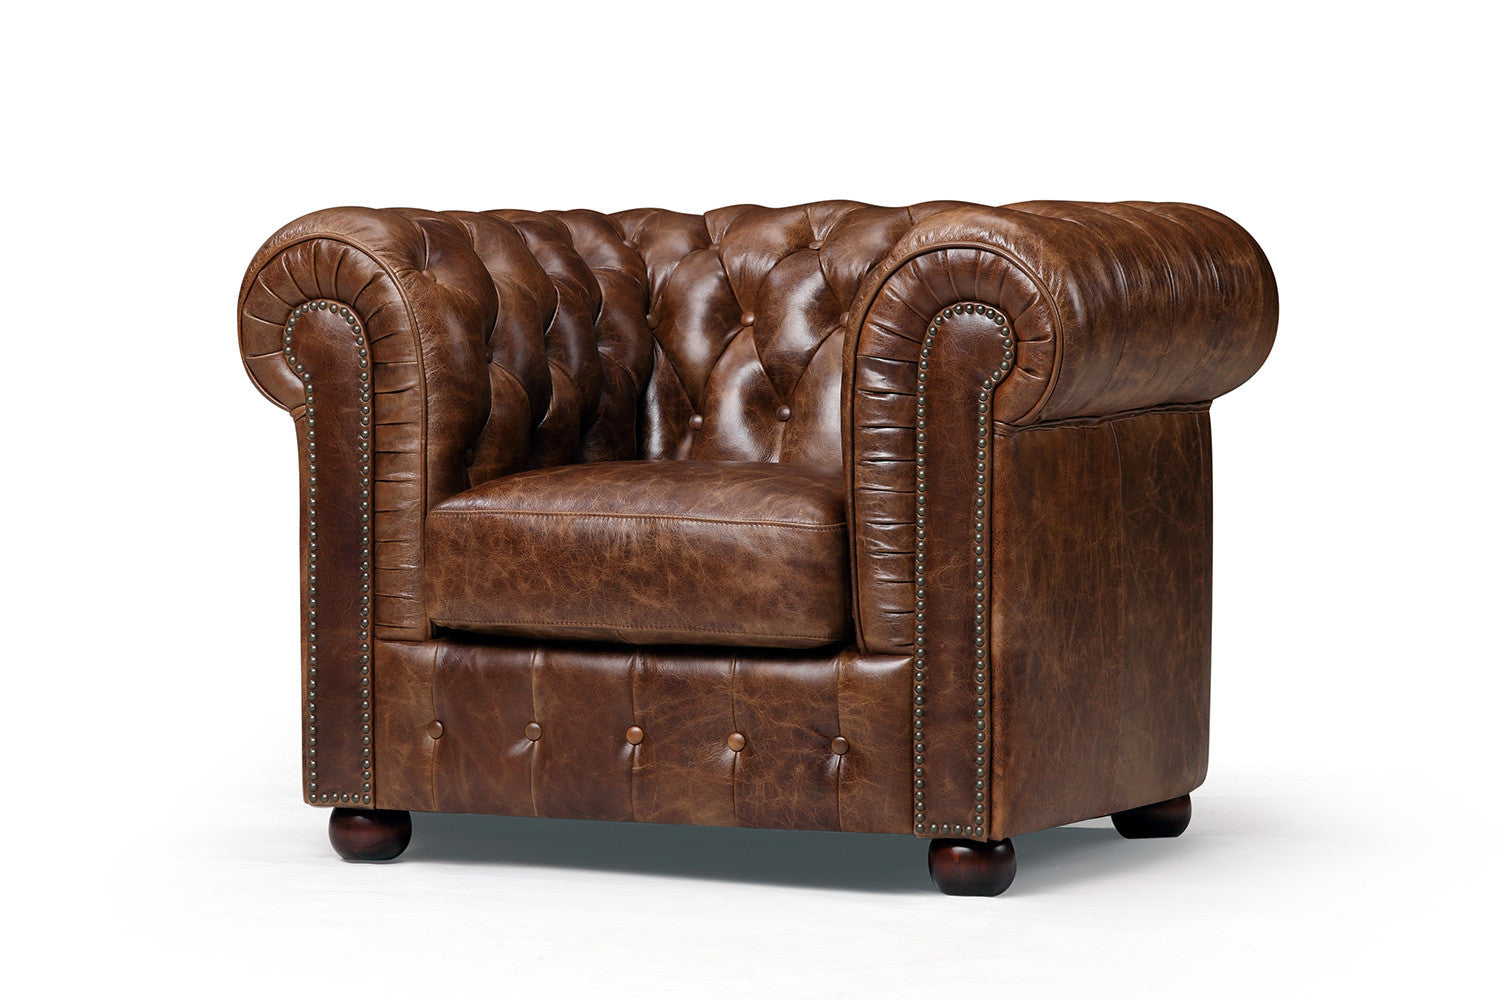 Fauteuil chesterfield original rose moore - Fauteuil chesterfield cuir occasion ...